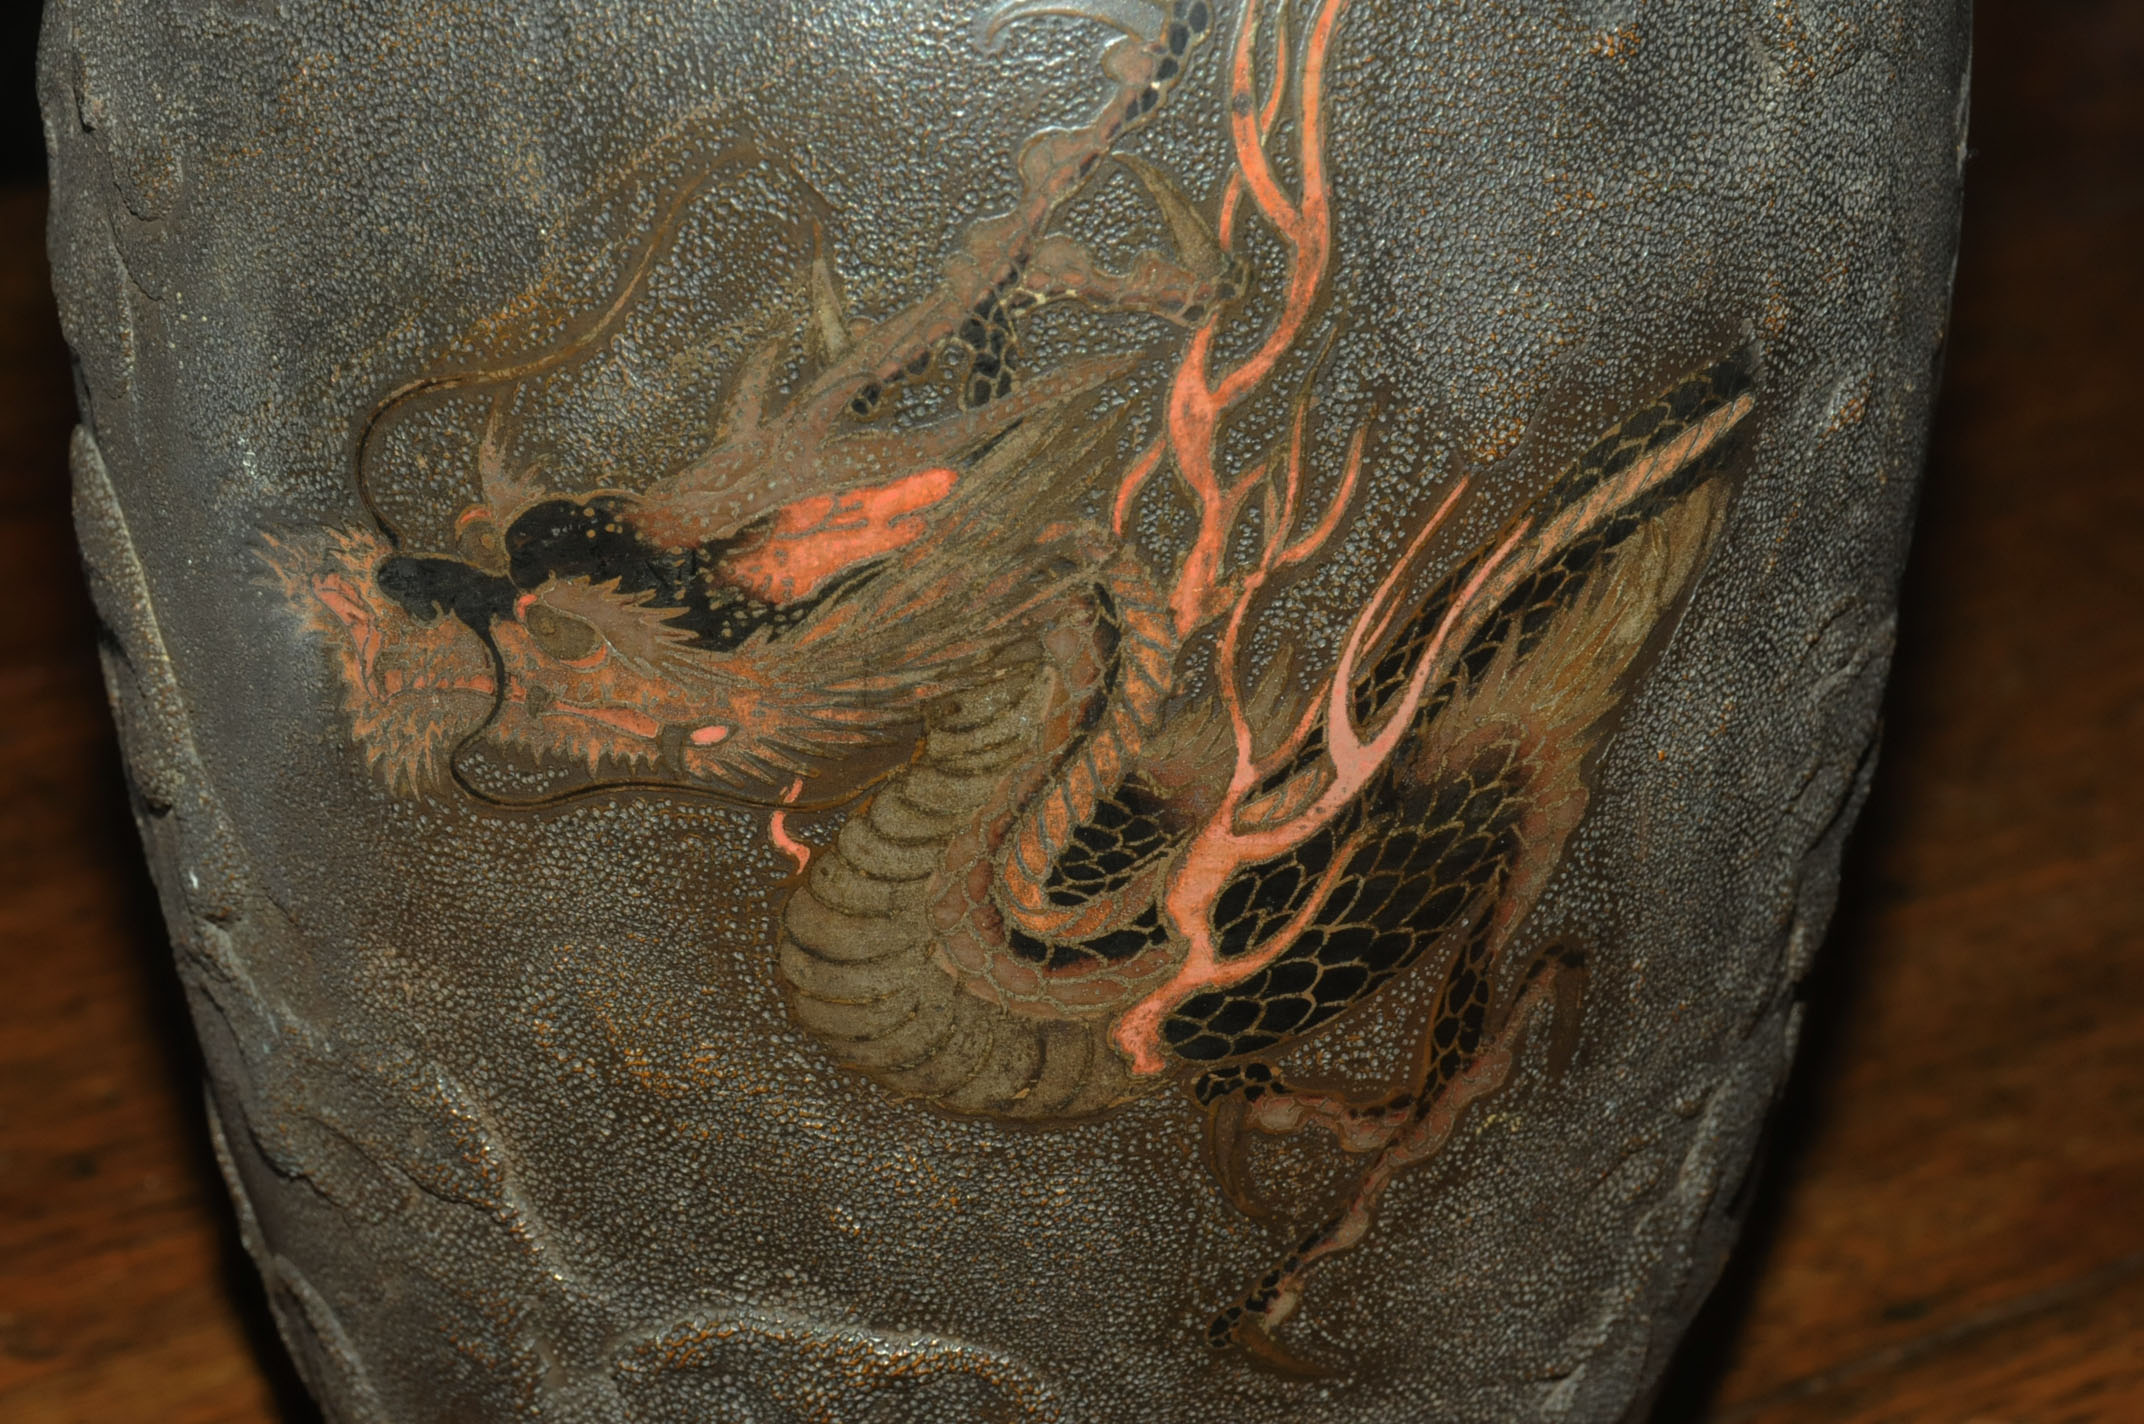 A pair of Japanese bronze vases, decorated with chasing dragons. Height 26 cm. - Image 7 of 11